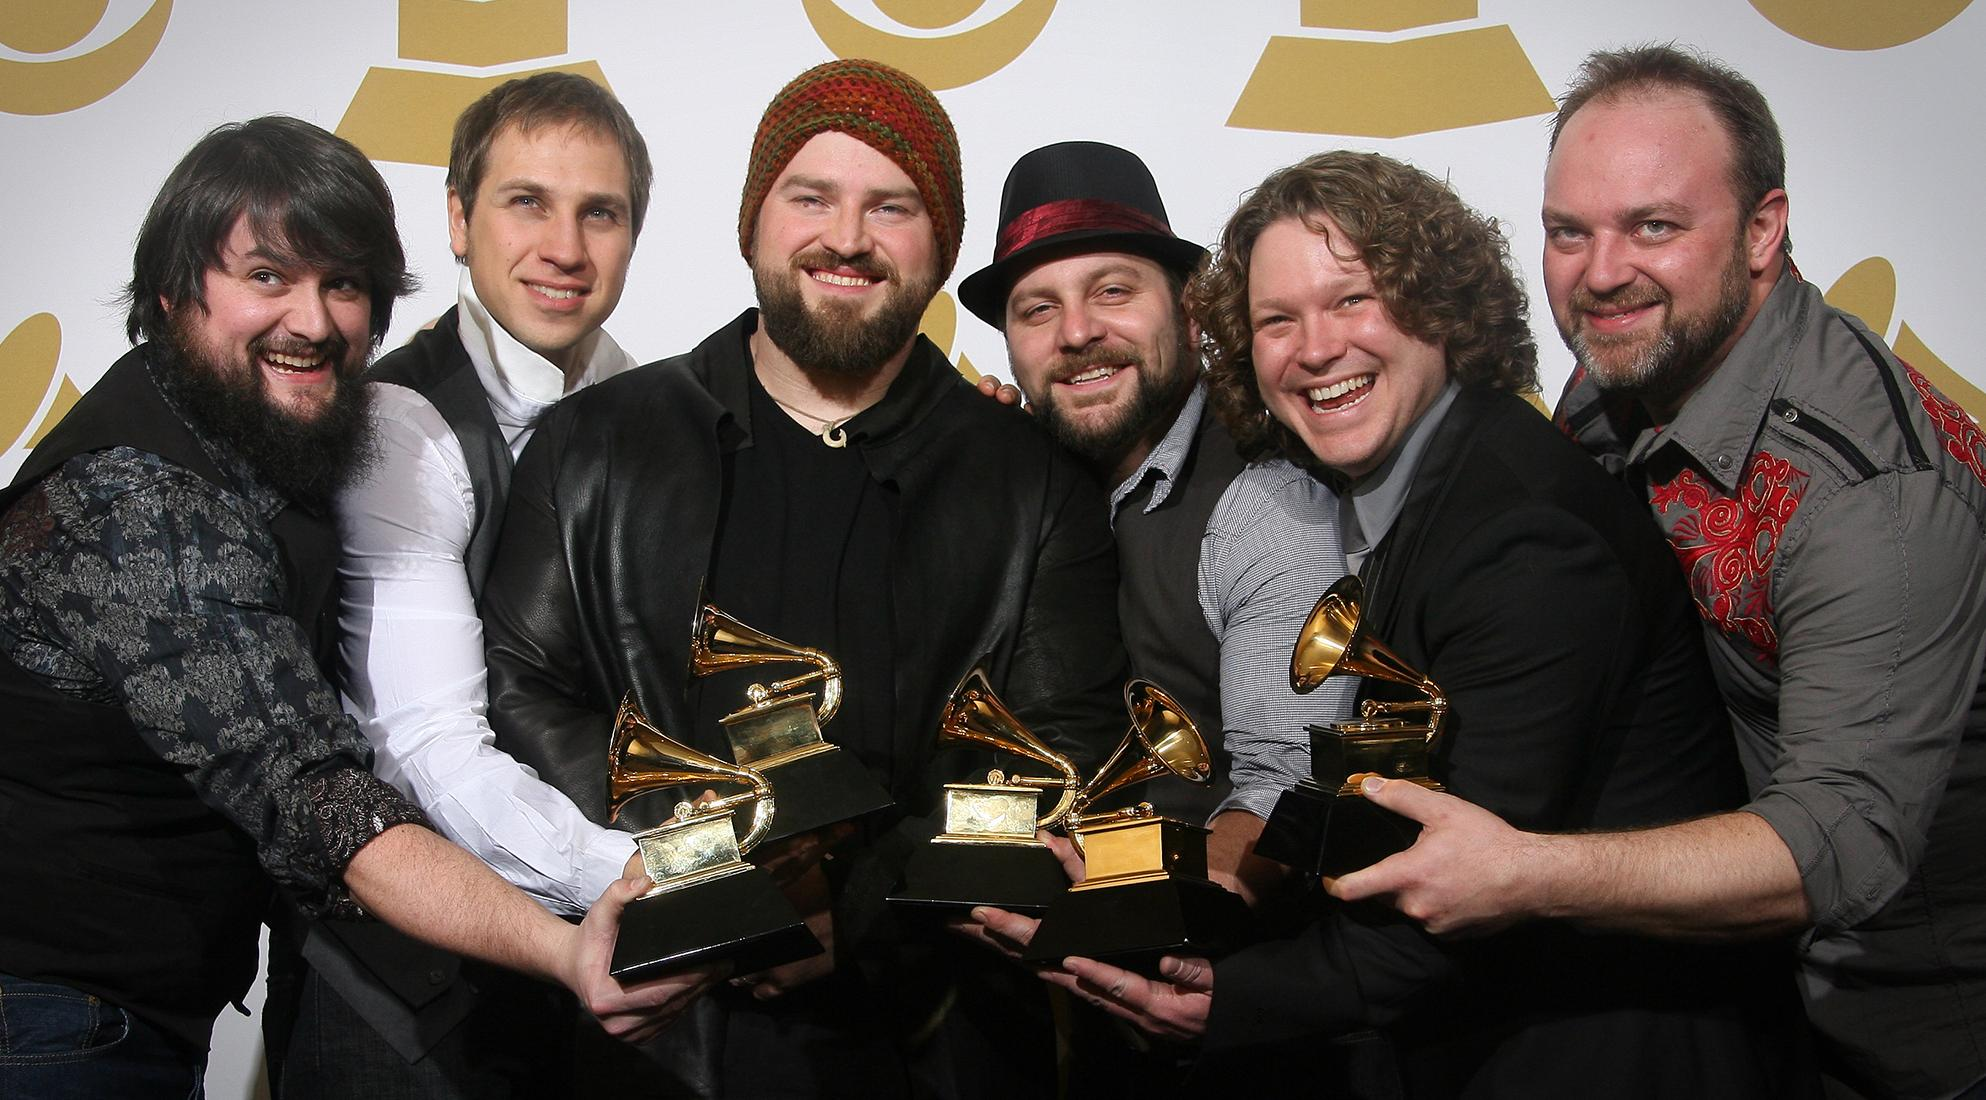 Zac Brown Band at the 2010 GRAMMYs